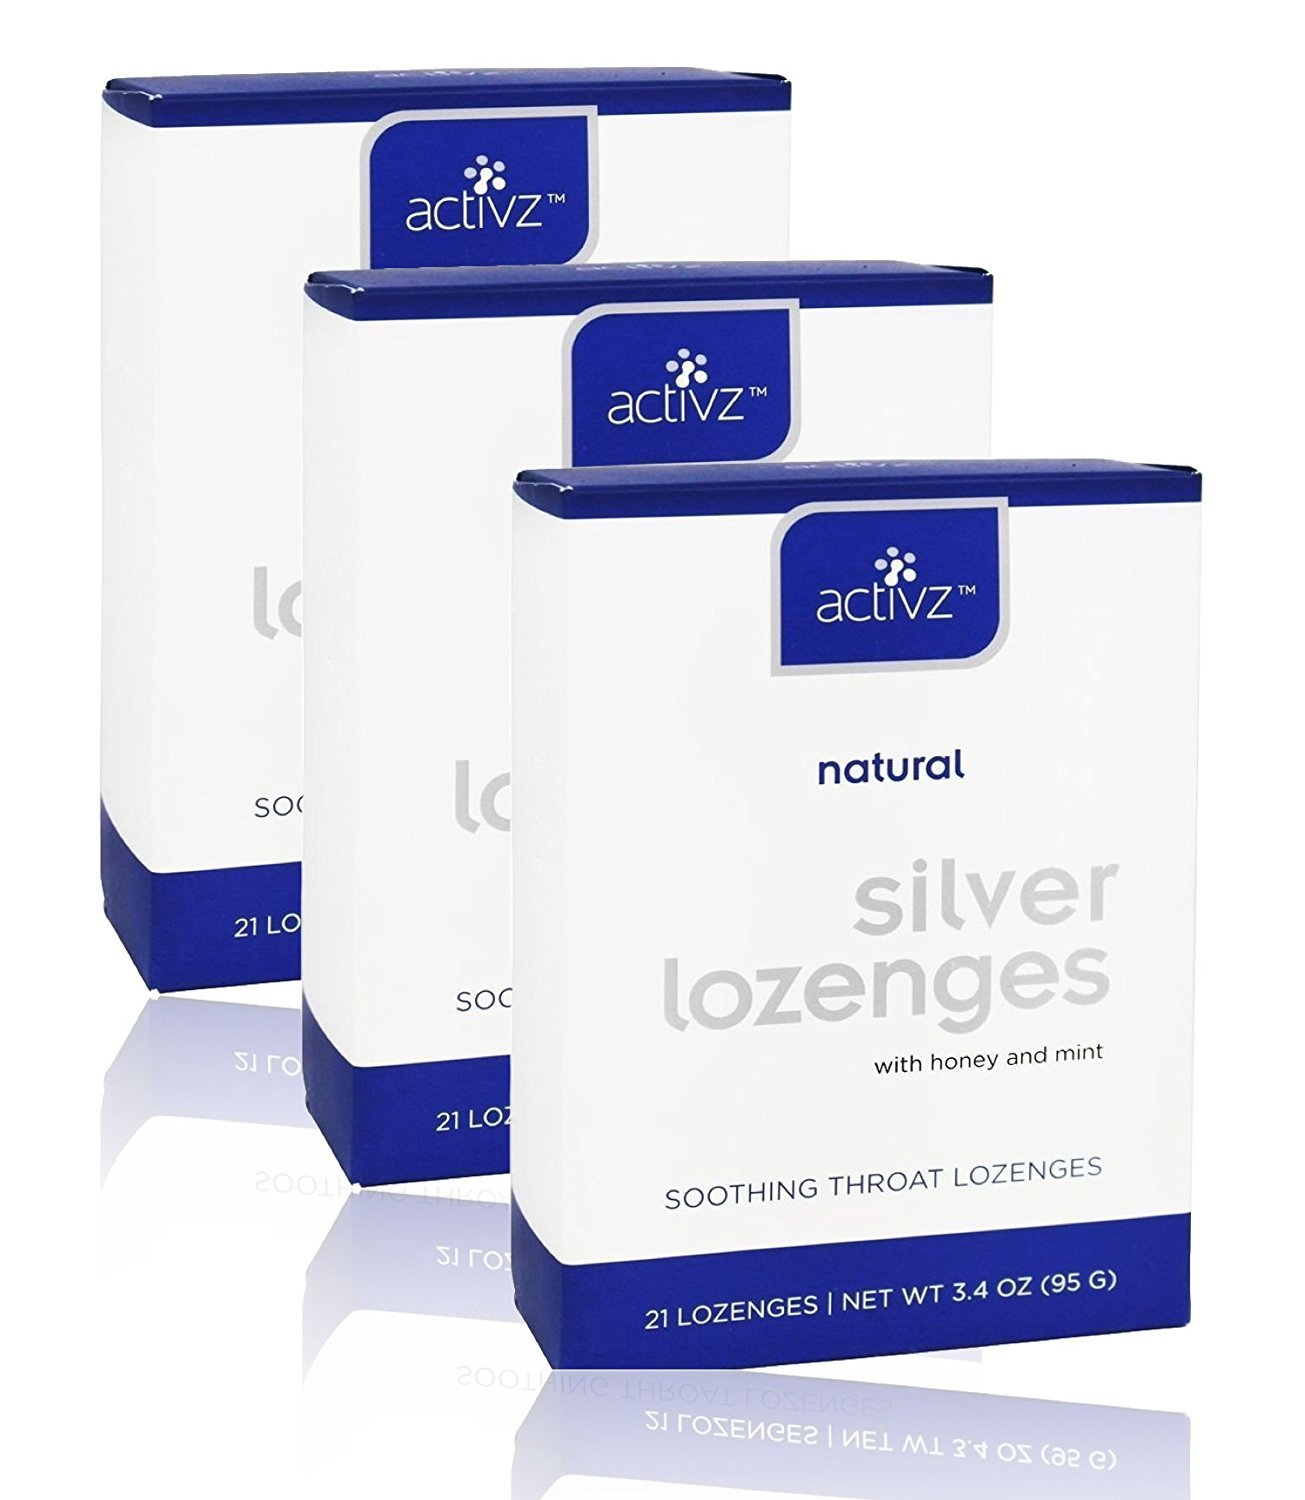 Activz, Silver Lozenges with Honey and Mint, 21 Lozenges, 3.4 oz (95 g) (Pack of 3) by Activz